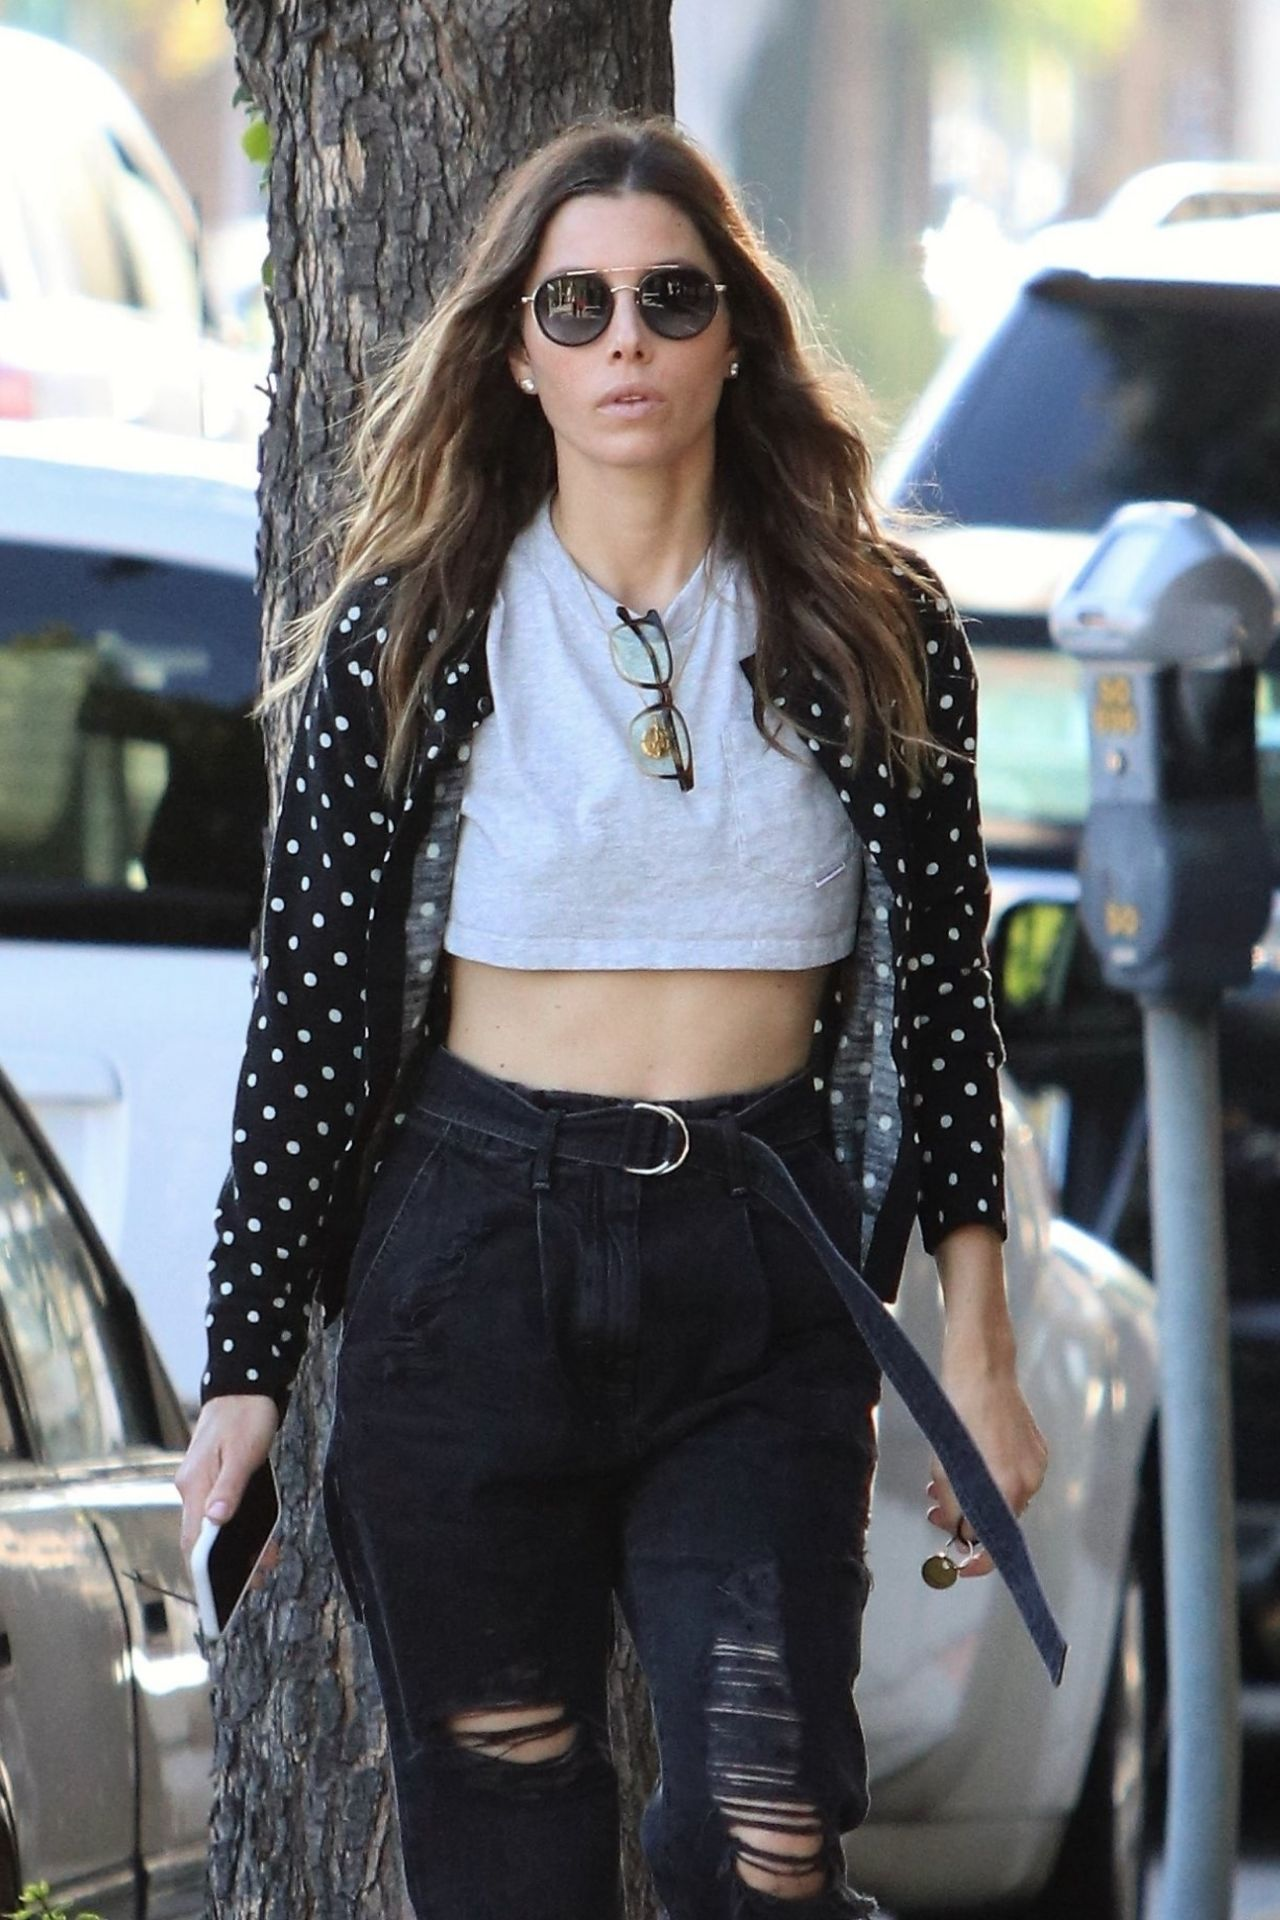 Jessica Biel Shows Her Tummy While Walking On The Street